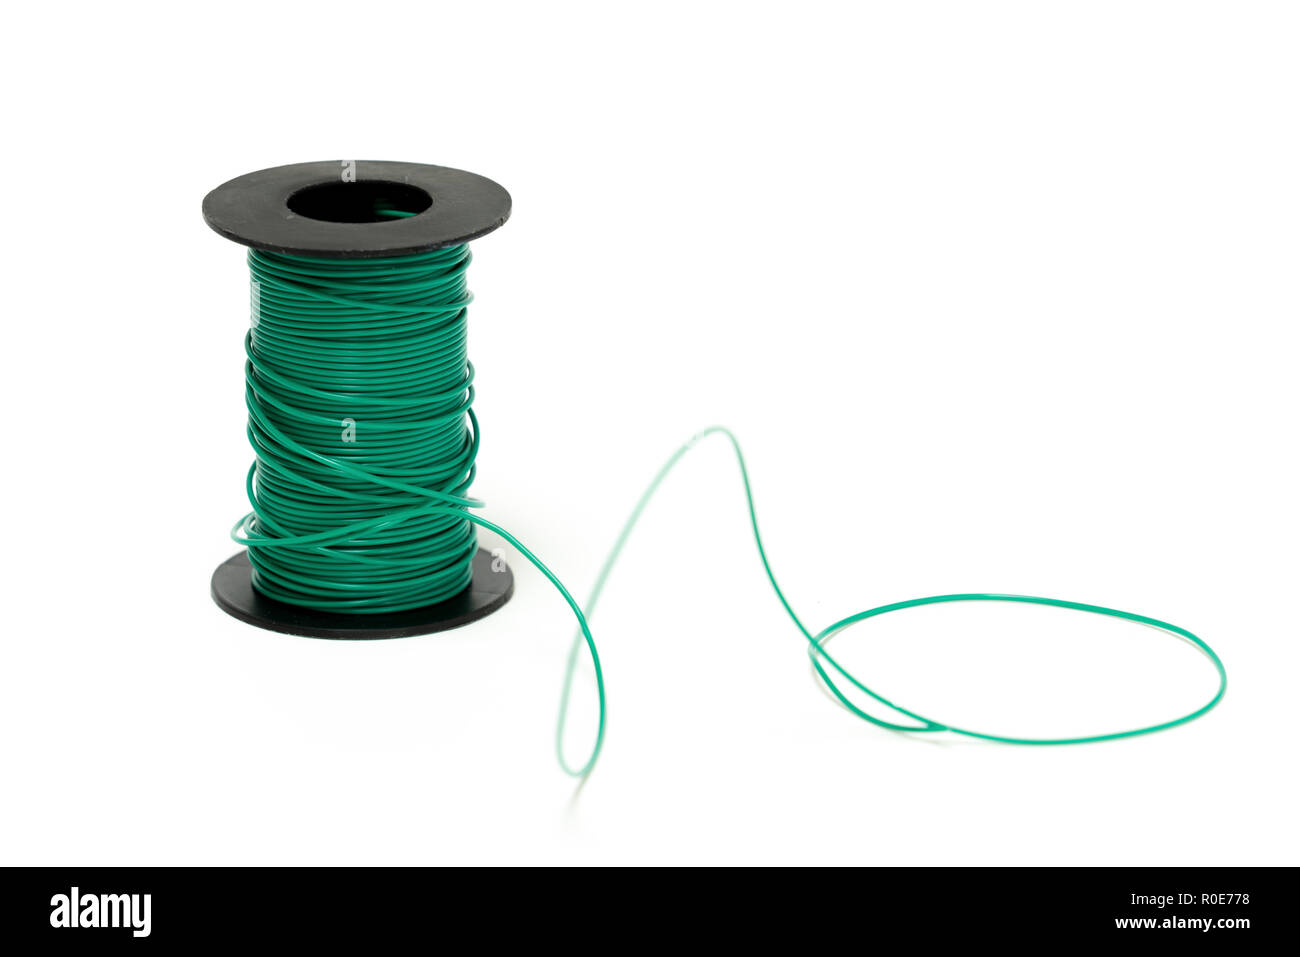 Spool of electrical cable. - Stock Image